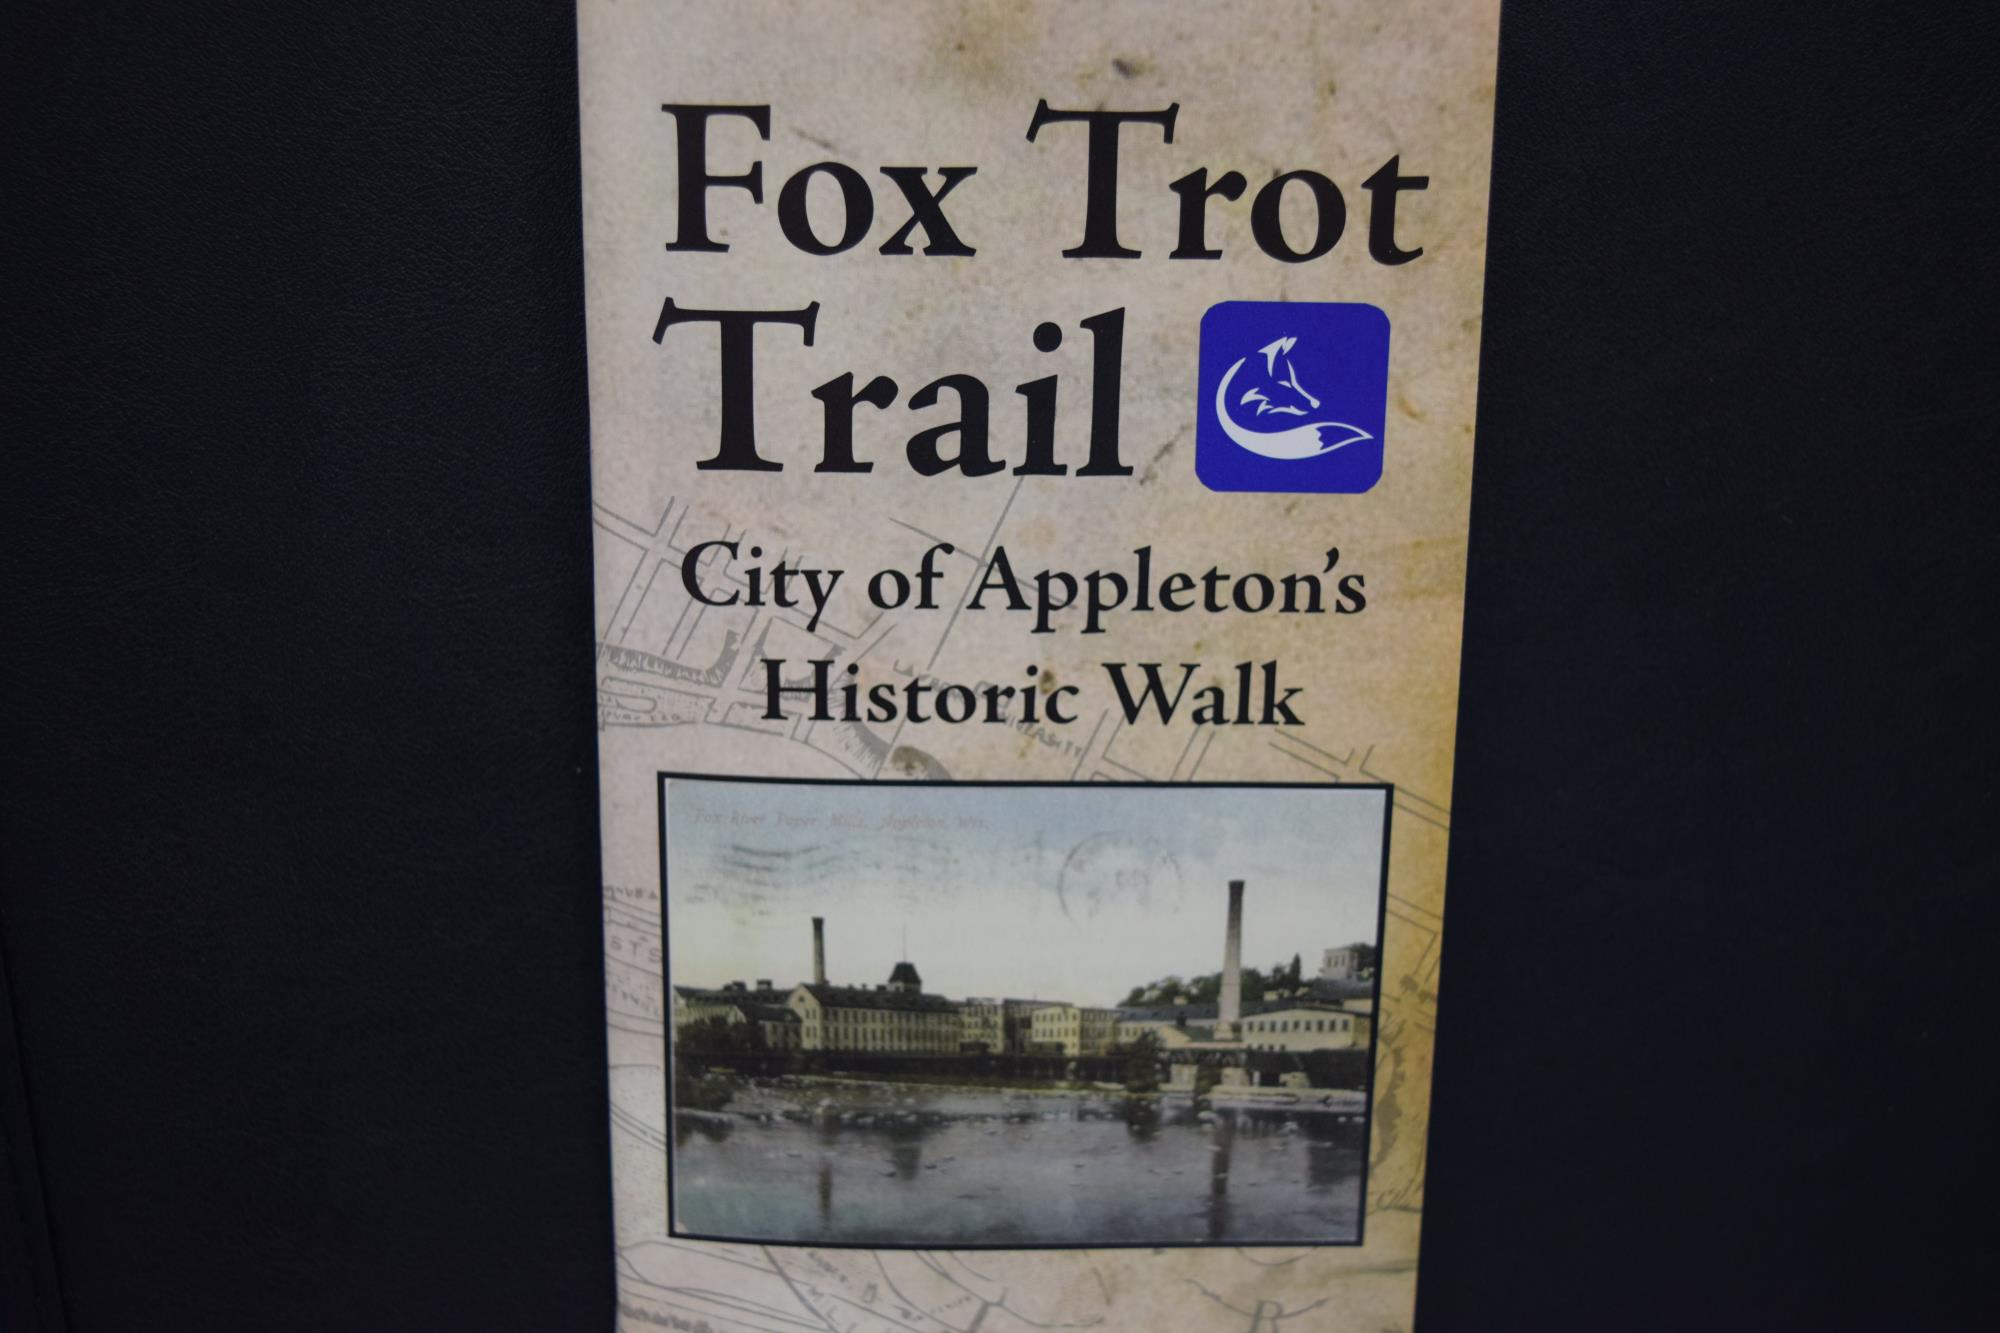 Fox Trot Trail brochure